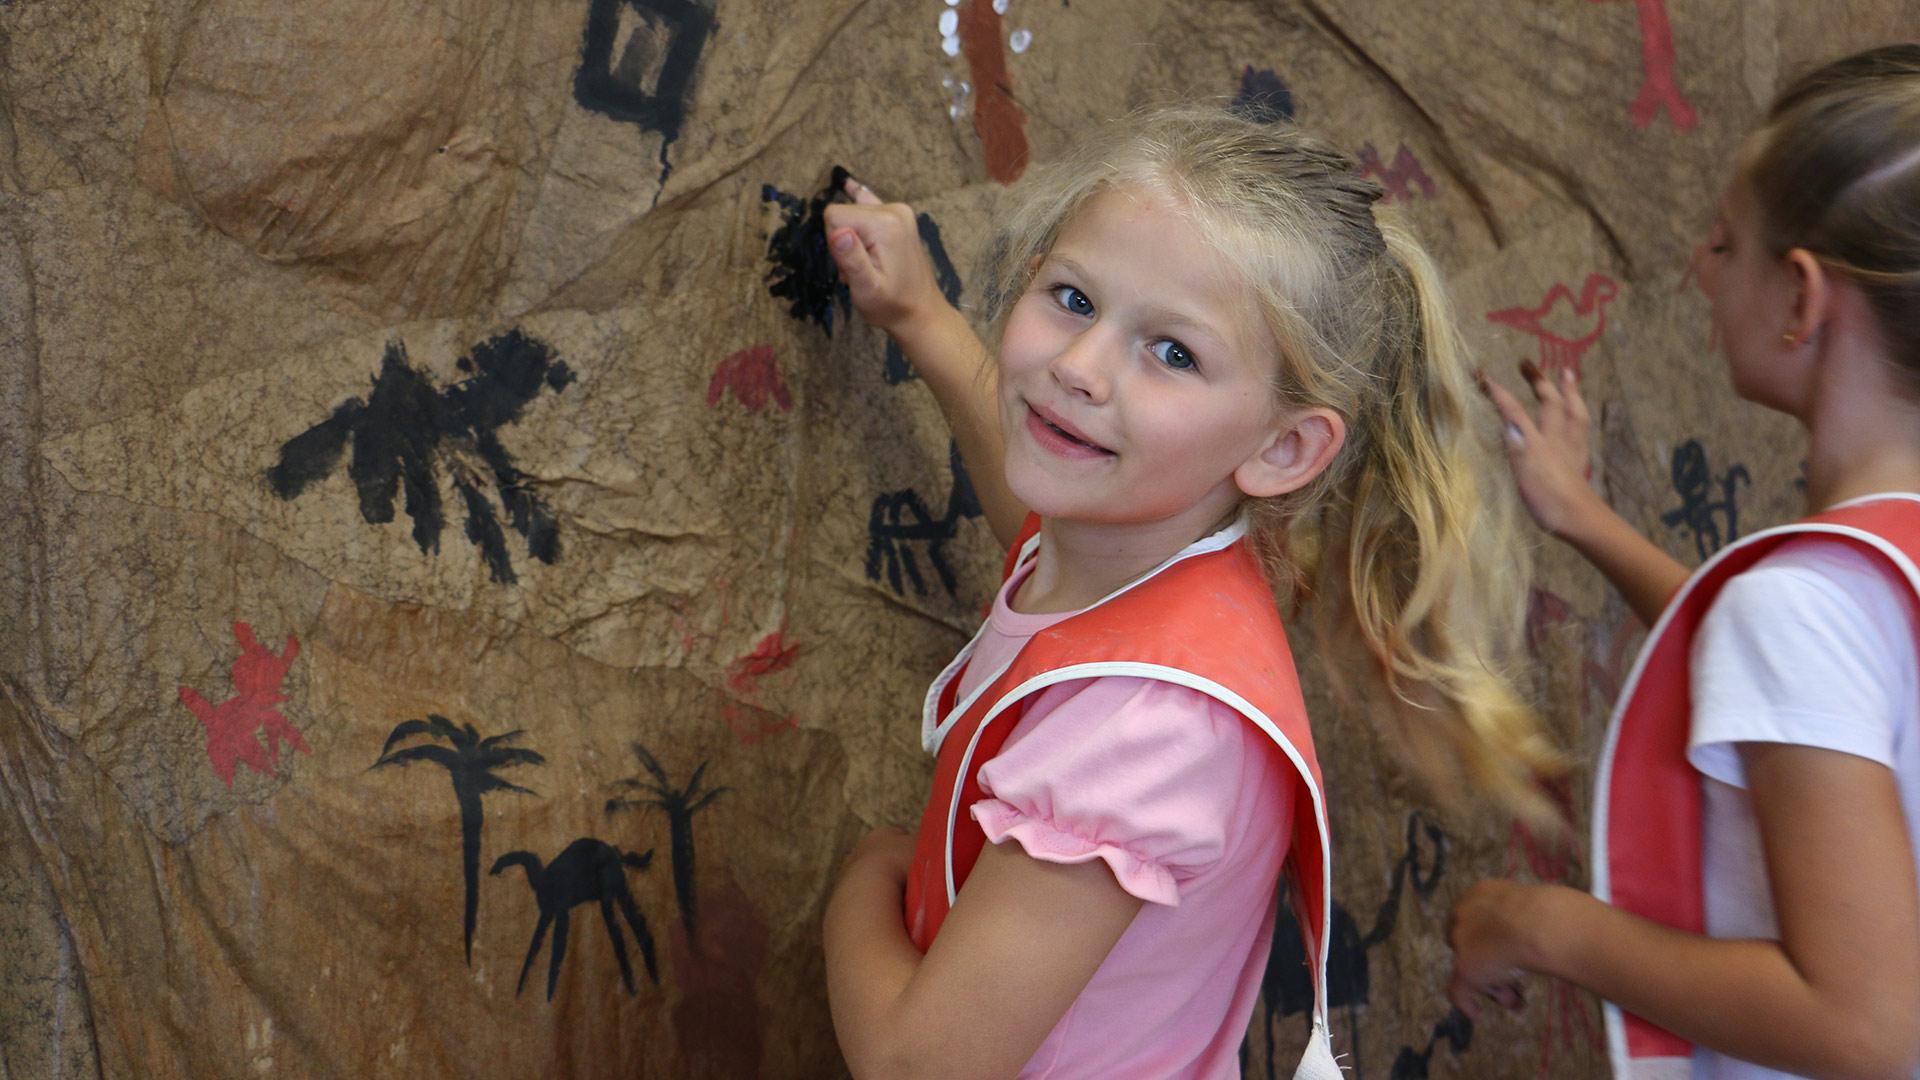 A girl painting on a large piece of paper on a wall.